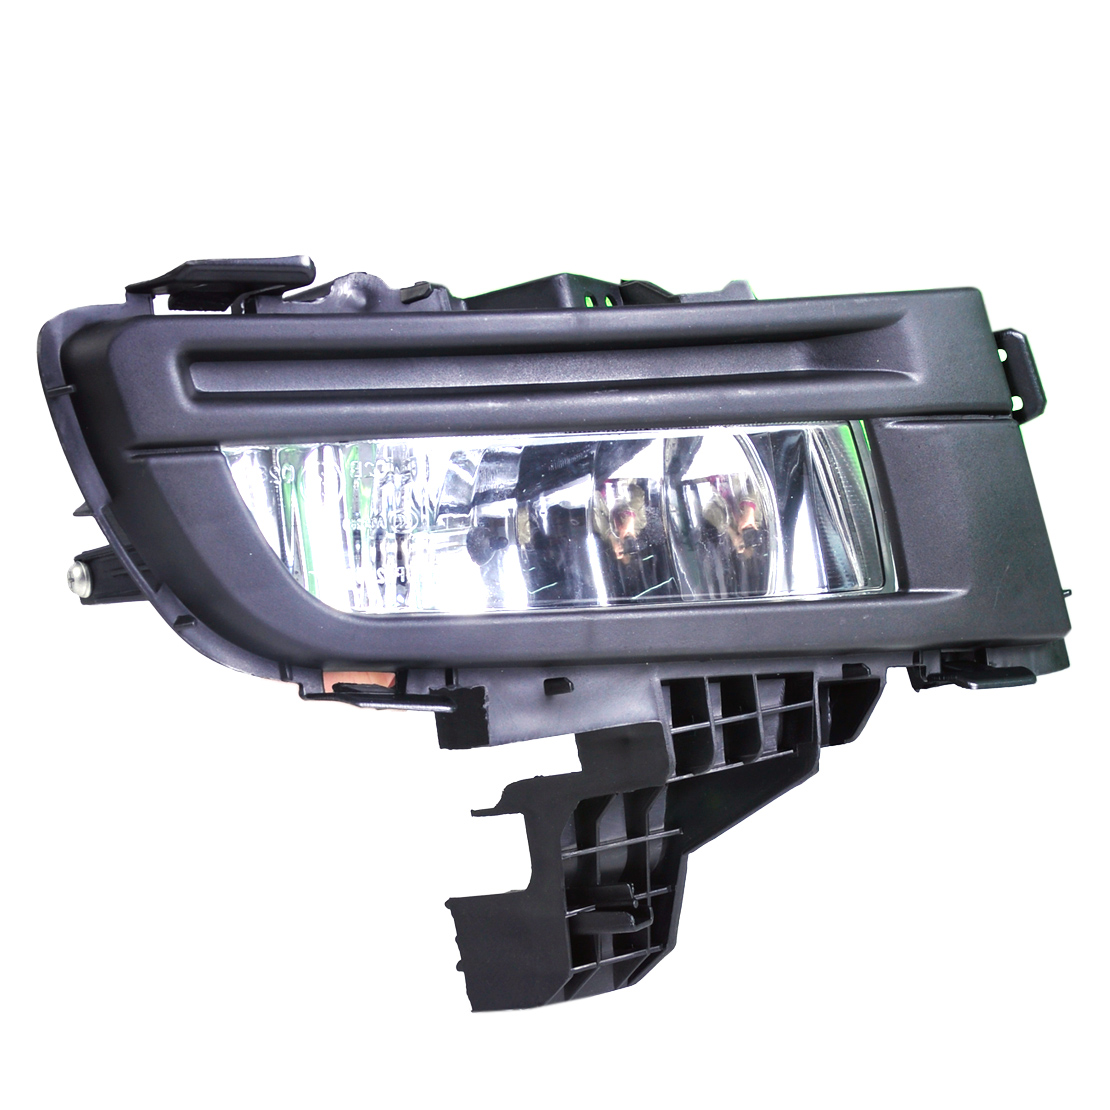 DWCX High Quality ABS 12V 51W Front Right Side Black Fog Light Lamp 9006 Replacement for <font><b>Mazda</b></font> <font><b>3</b></font> <font><b>2007</b></font> 2008 2009 Car <font><b>Accessories</b></font> image